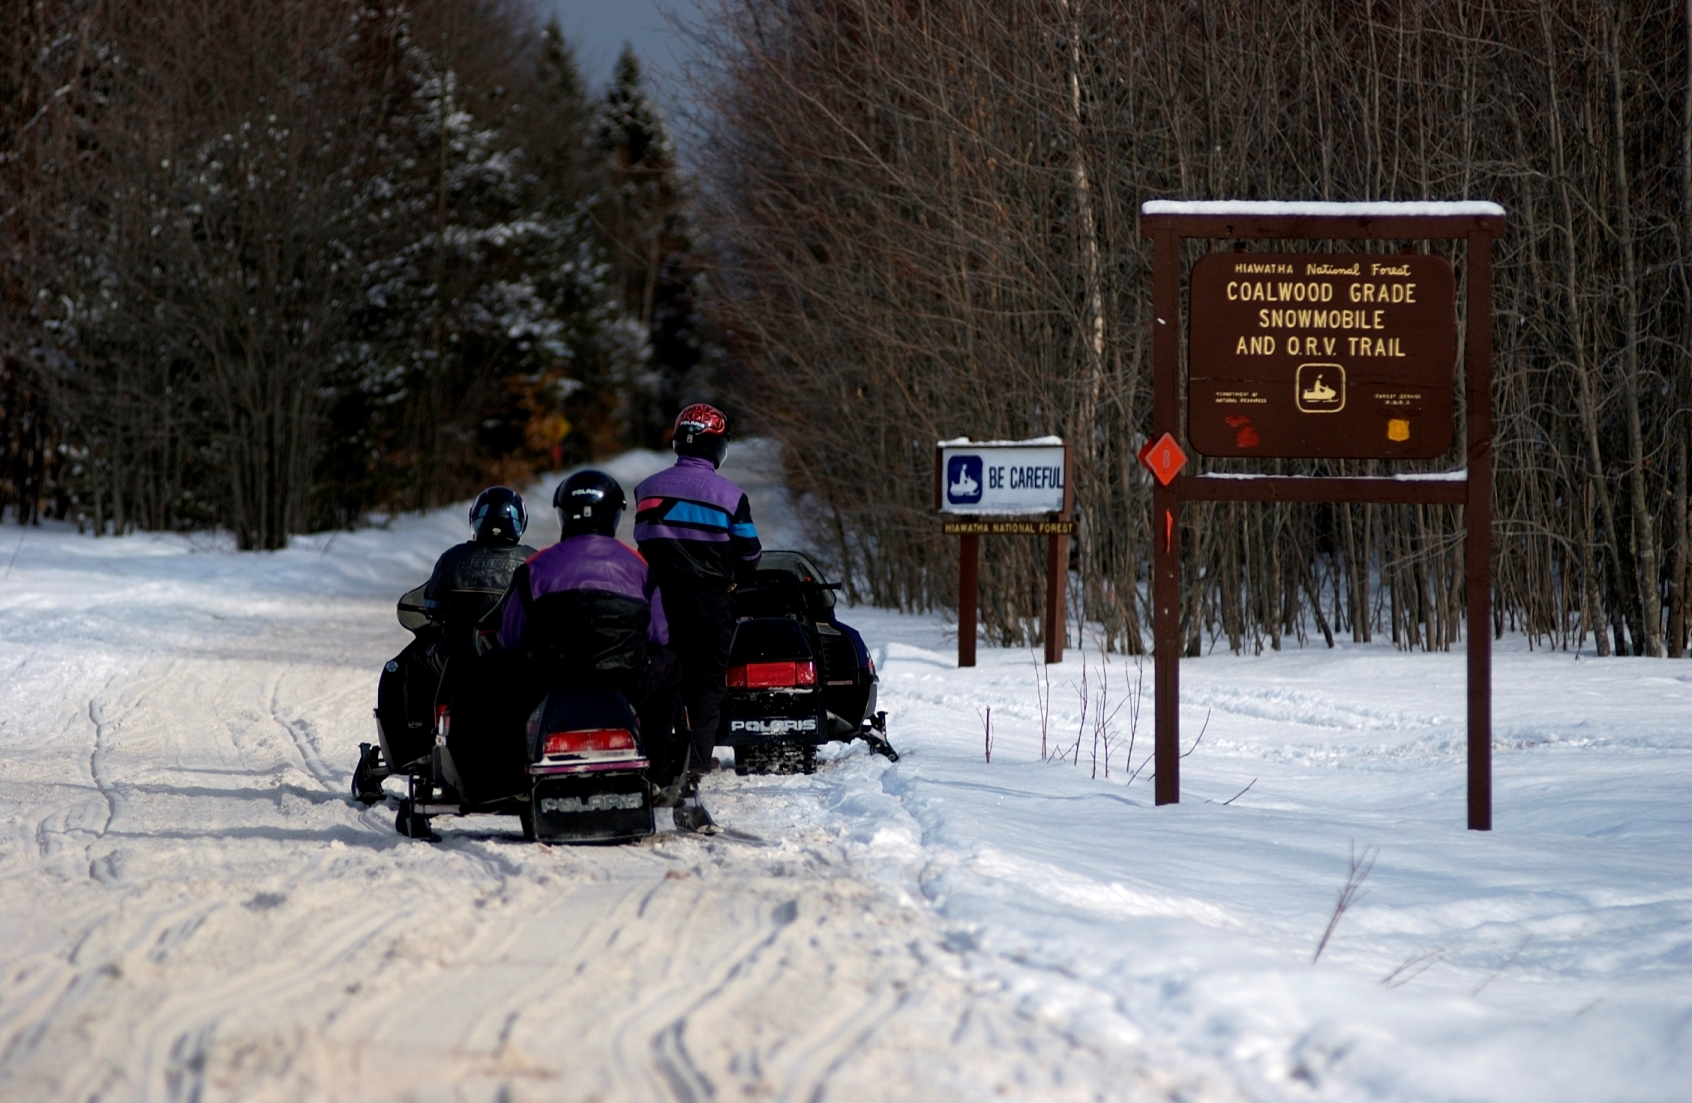 A group of snowmobilers gets ready to explore the Coalwood Grade Snowmobile and ORV Trail in the central Upper Peninsula.